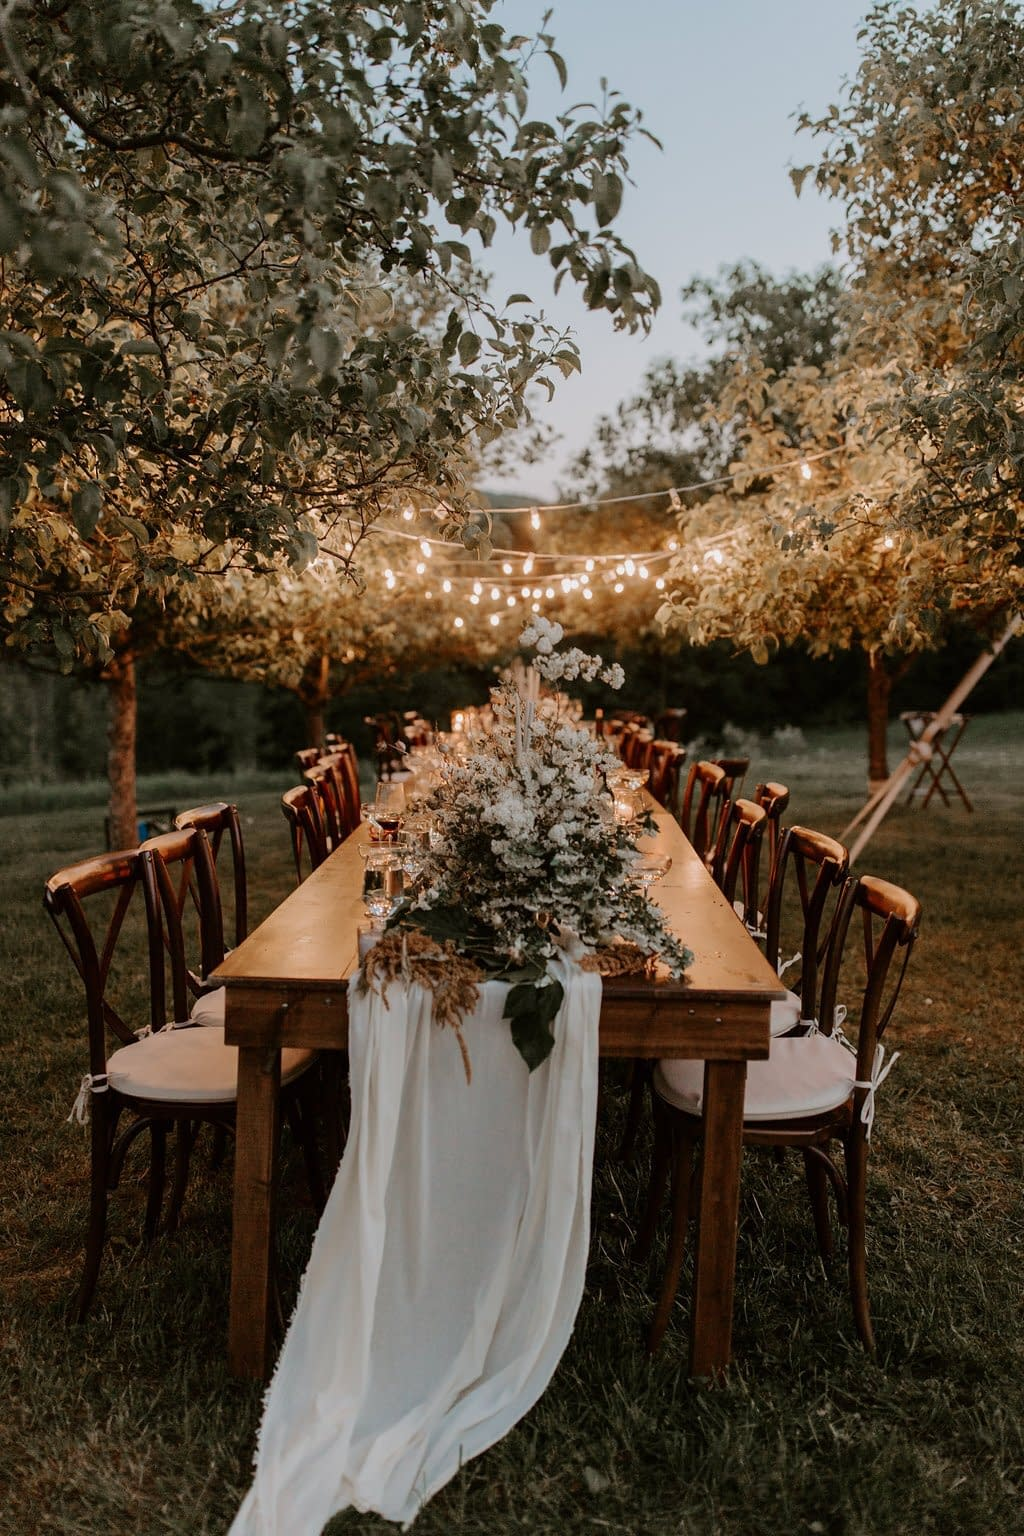 Outdoor elopement farm table flower and greenery runner reception centerpiece by Nectar and Root, Vermont wedding florist at a backyard wedding in Vermont.